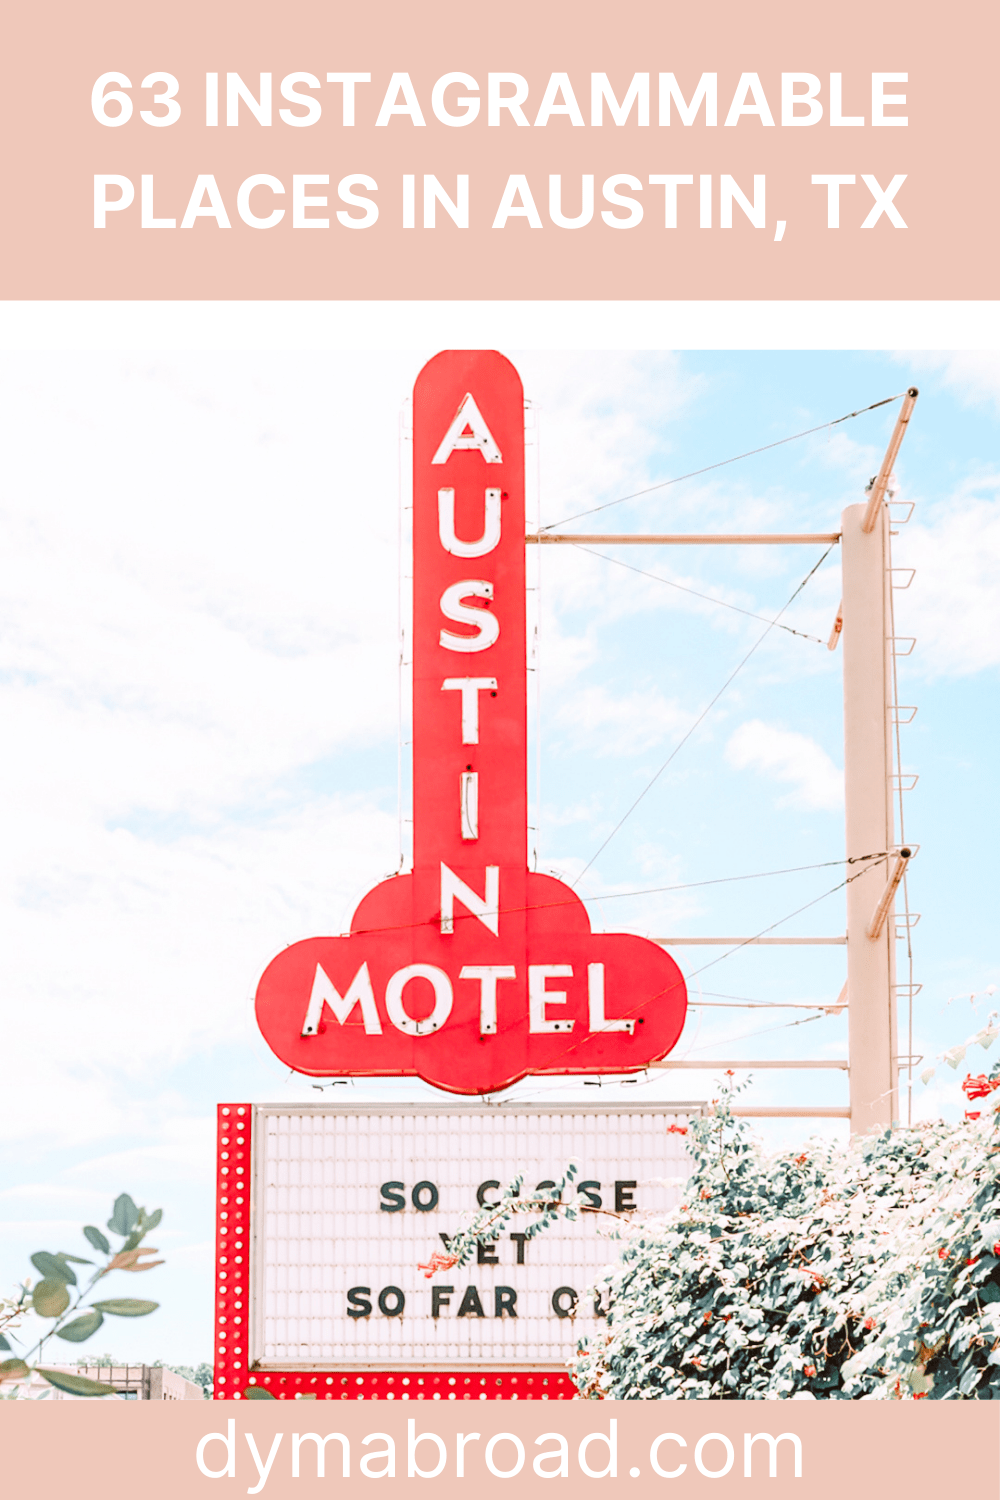 Most Instagrammable places in Austin Pinterest image